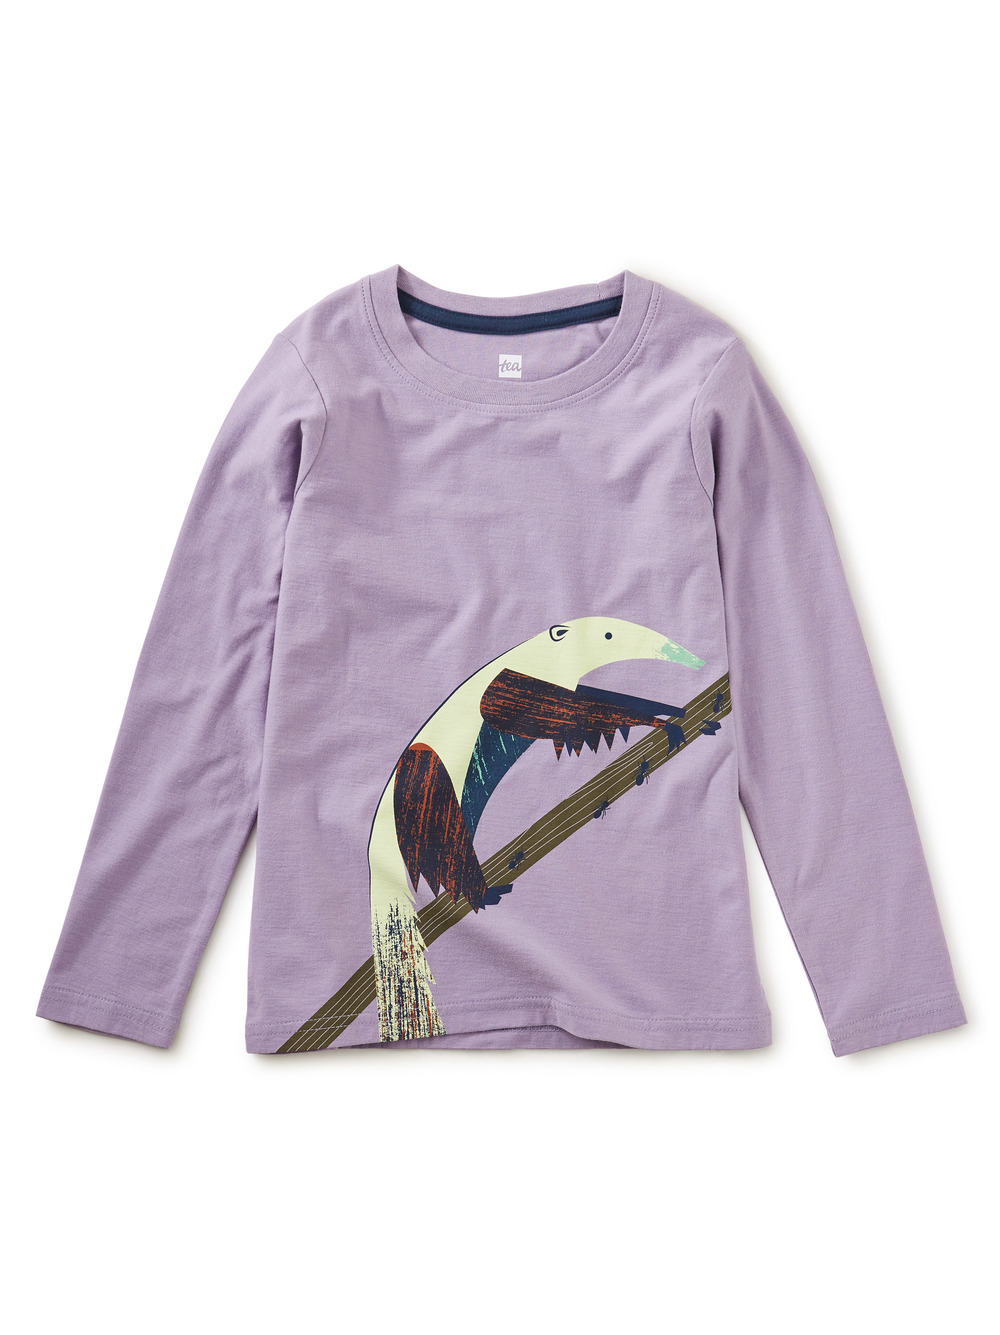 Ambitious Anteater Graphic Tee